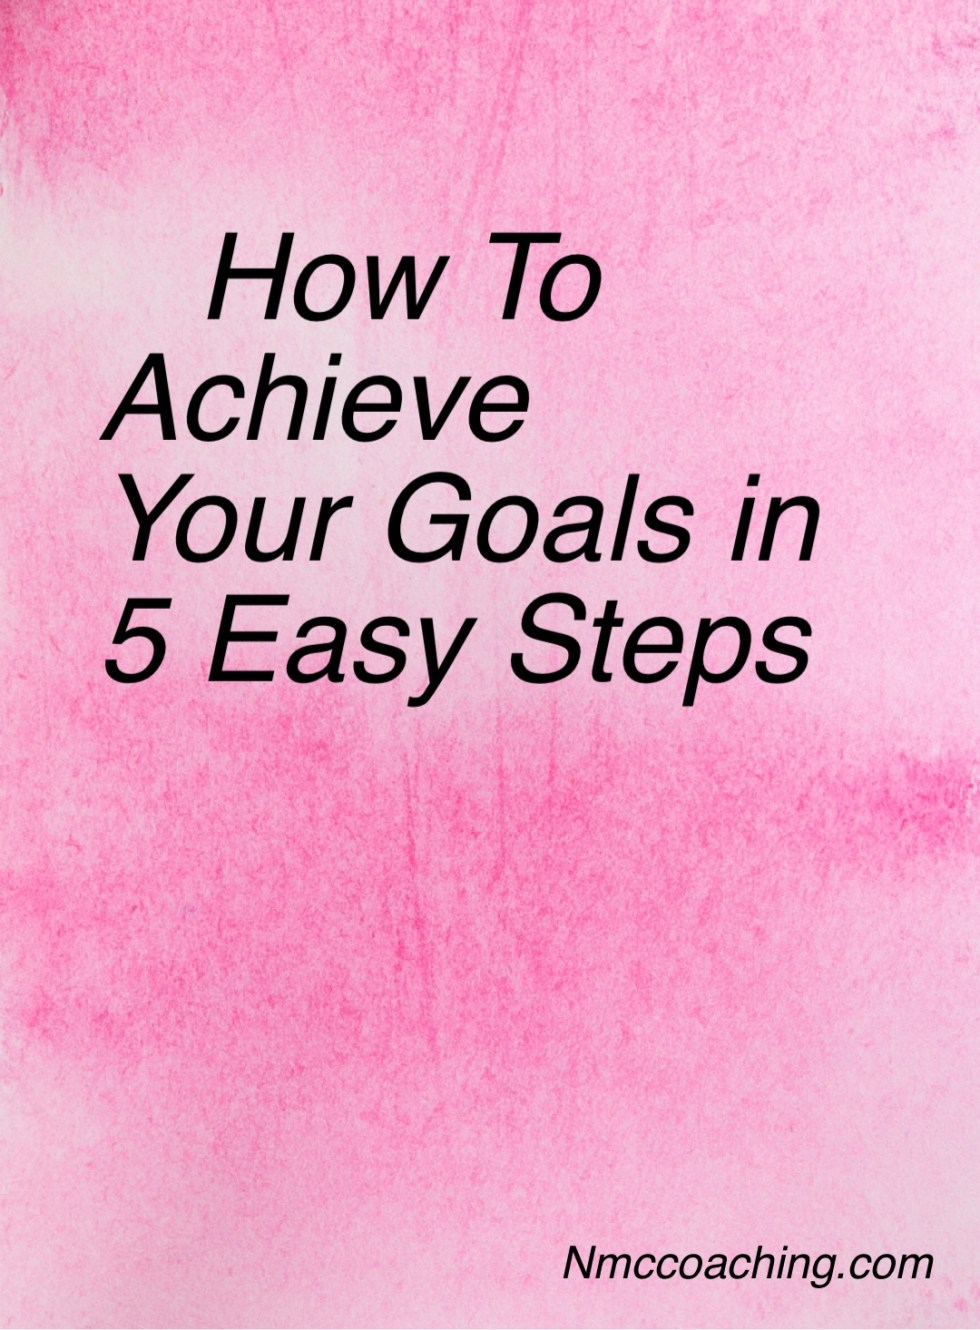 How to achieve your goals in 5 easy steps